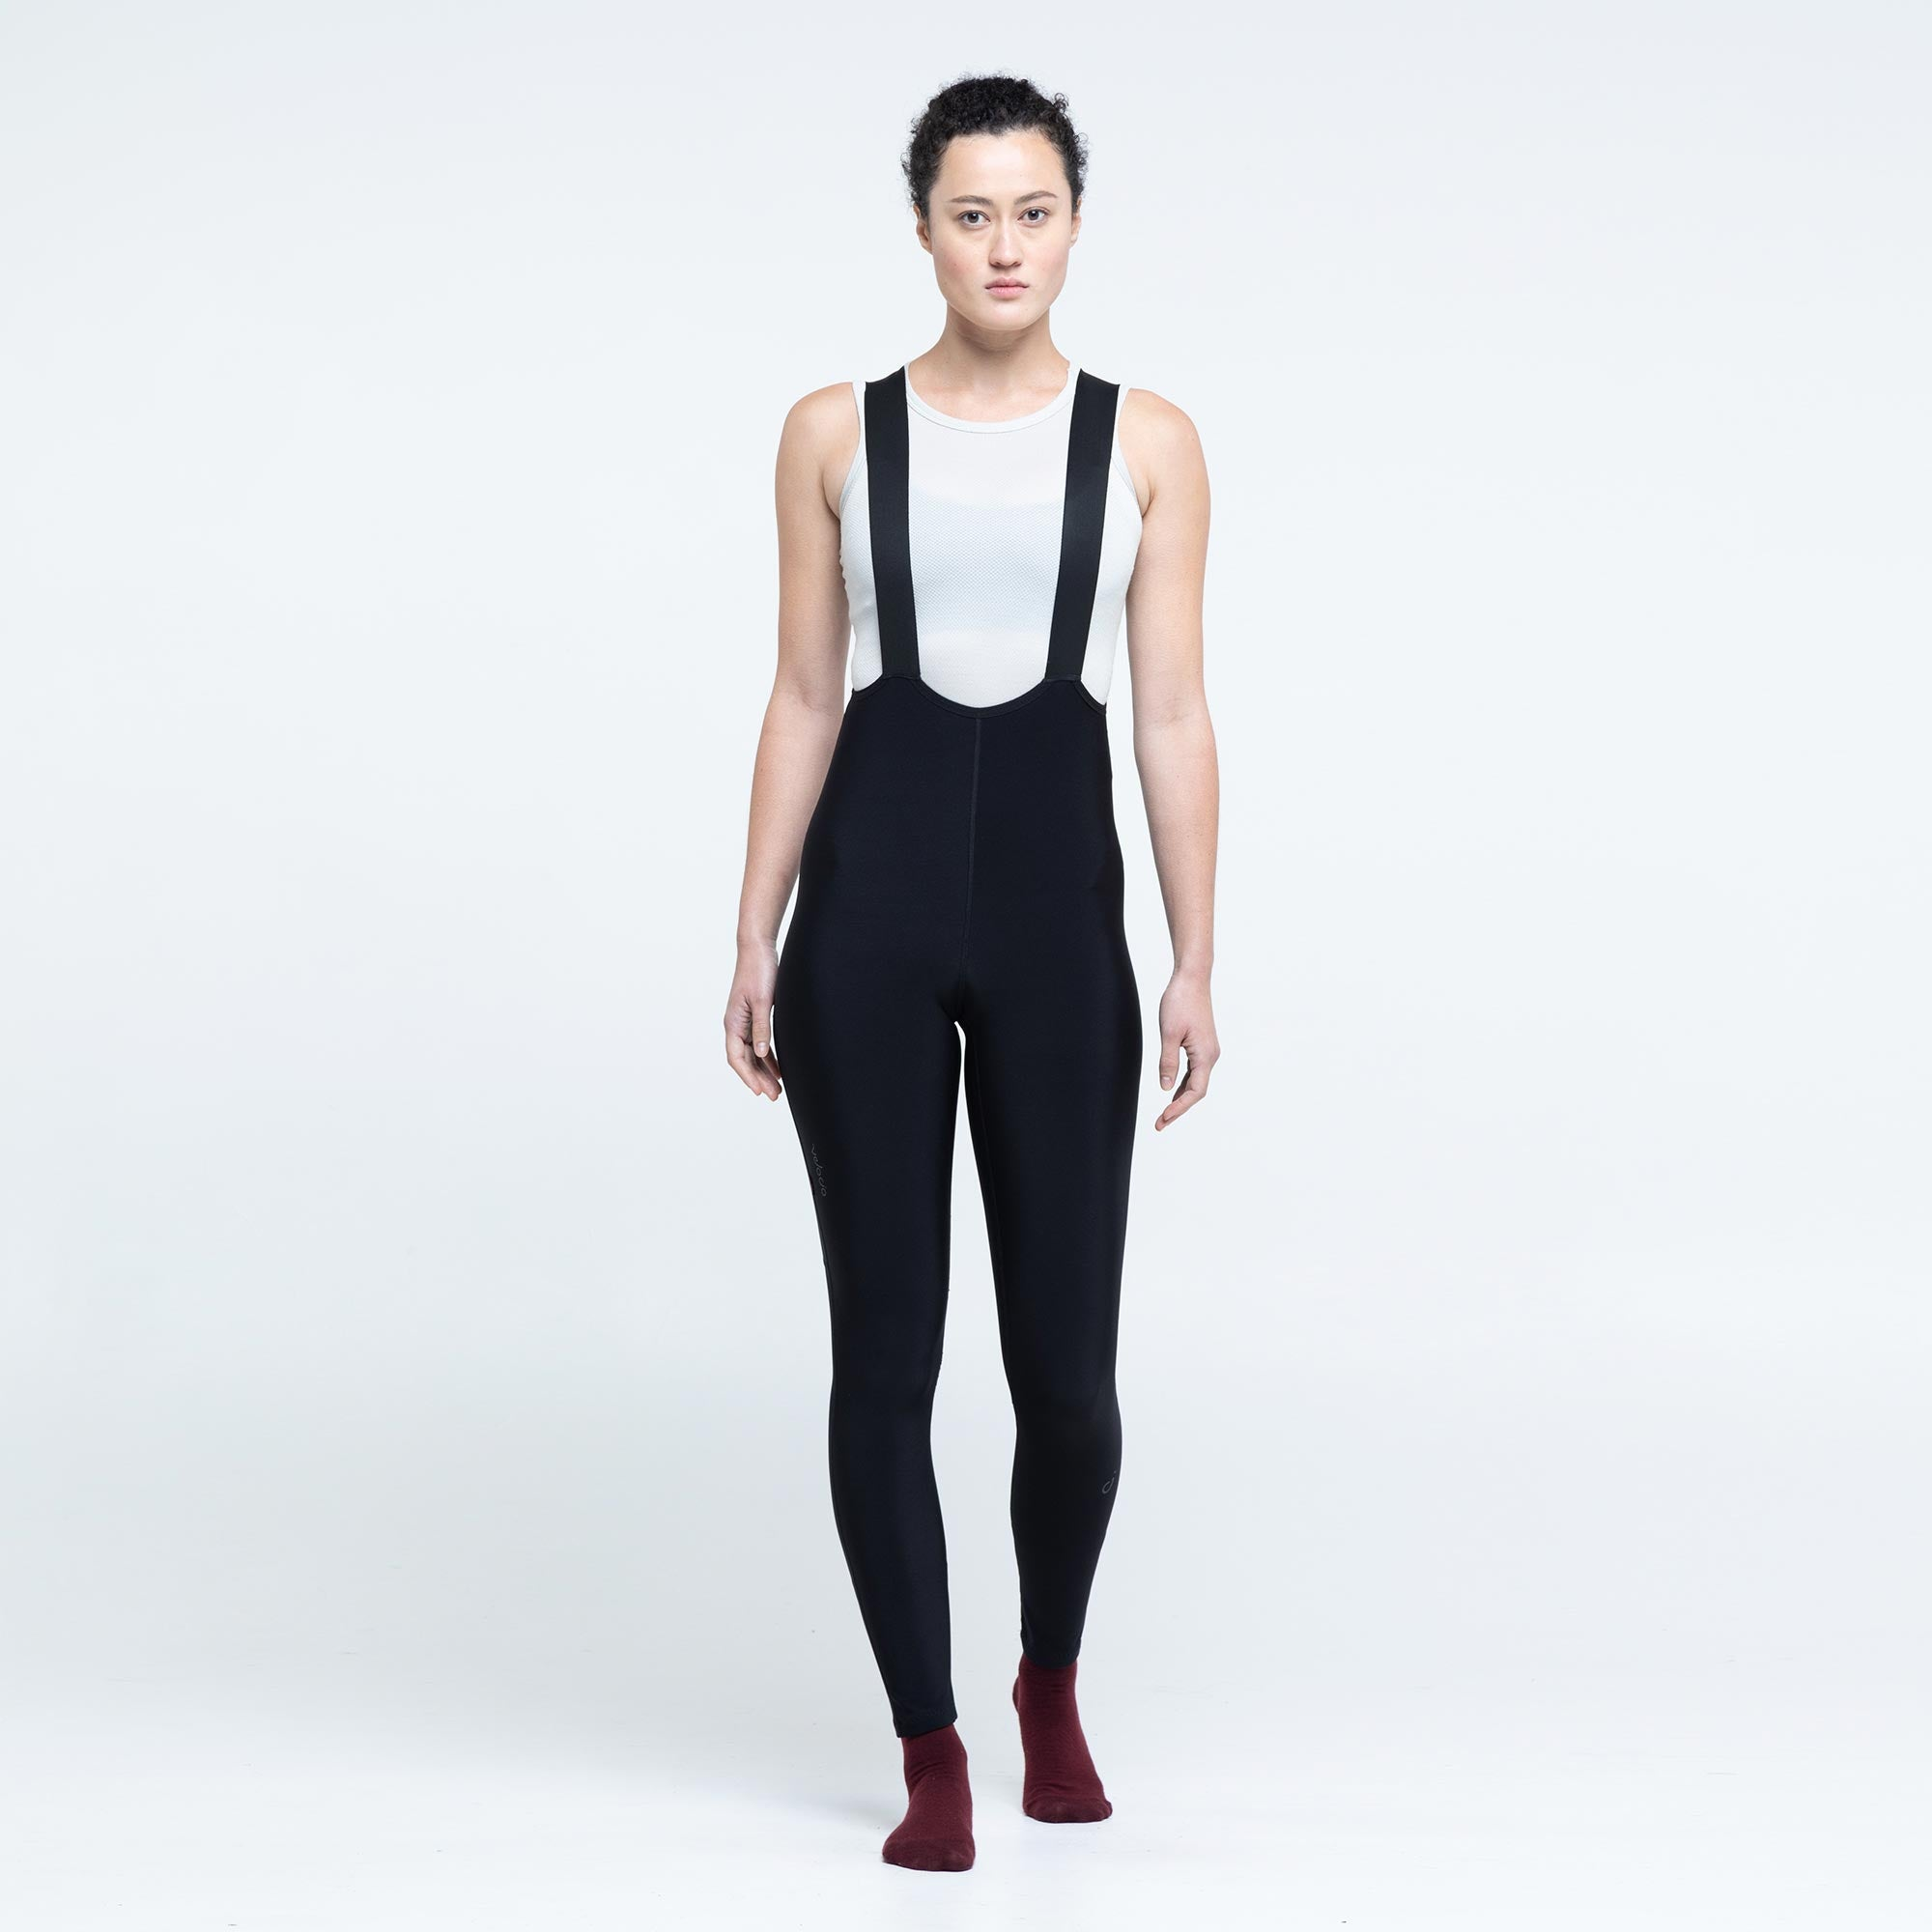 Women's Foundation Bib Tight